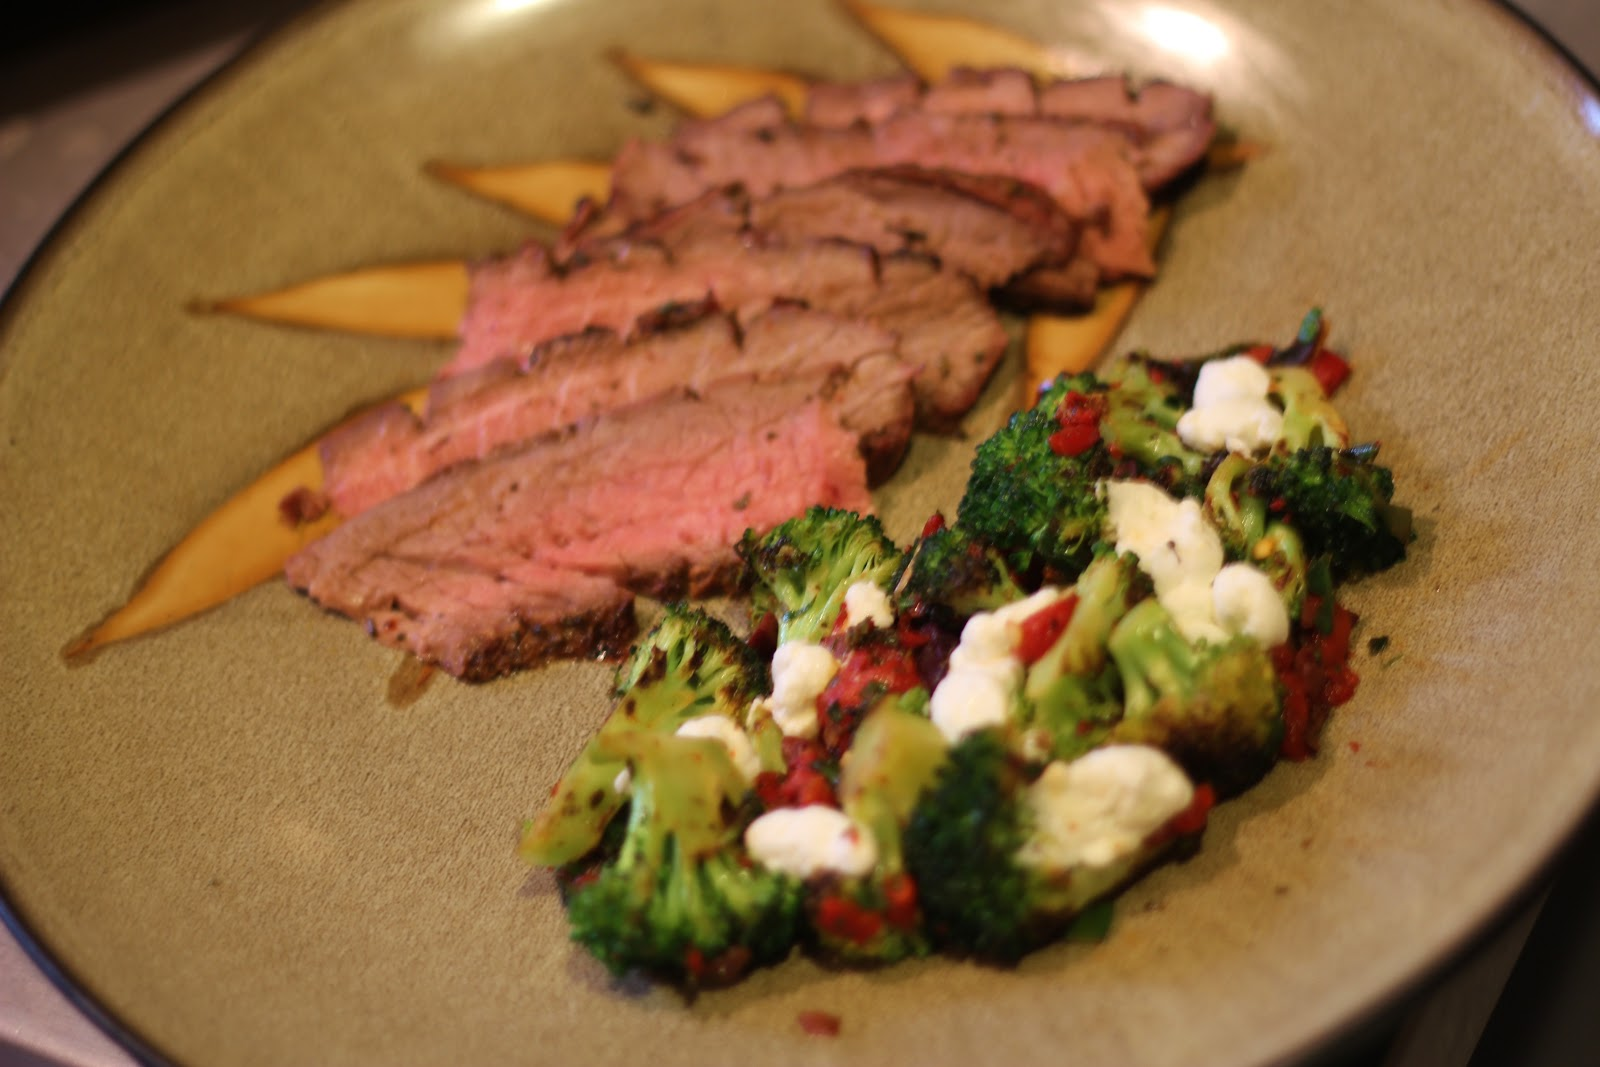 Marinated Flank Steak and Sauteed Broccoli with Roasted Red Peppers ...